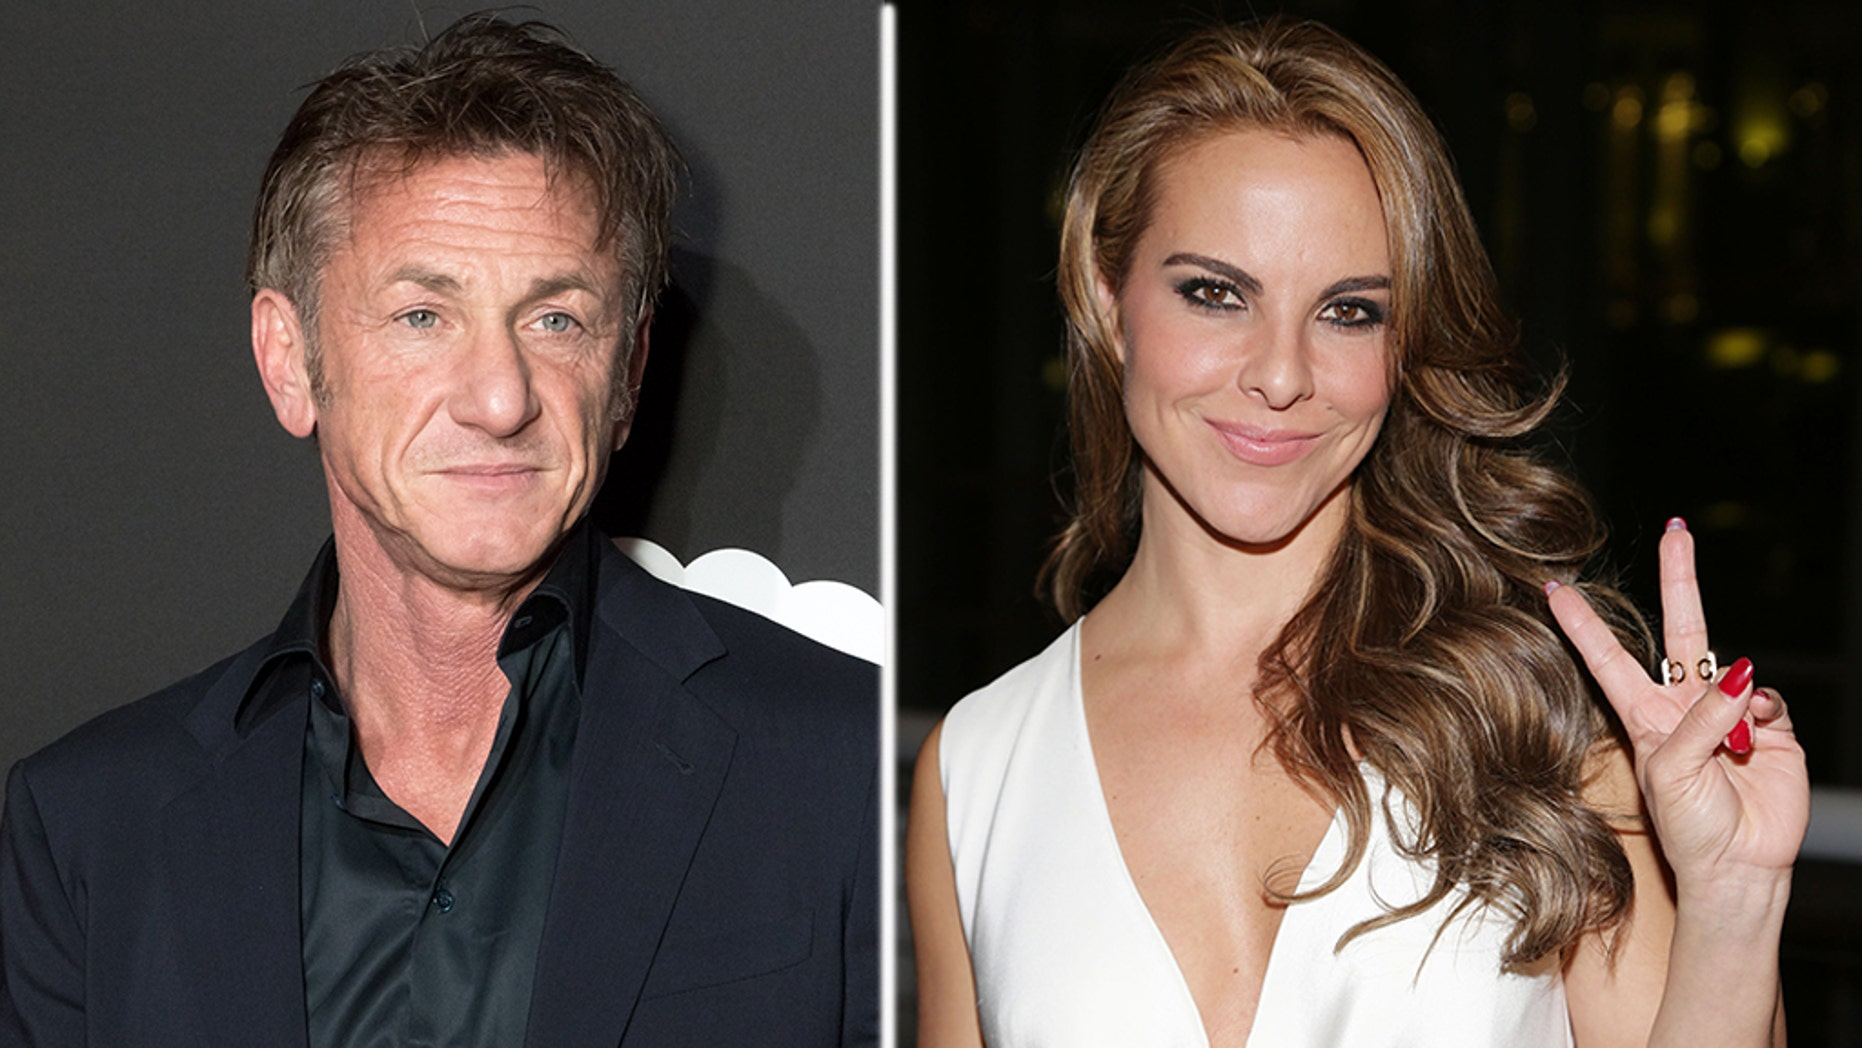 Actress Kate del Castillosaid at a news conference in Mexico on Thursday that she is no longer in touch with Sean Penn and believes he betrayed her.